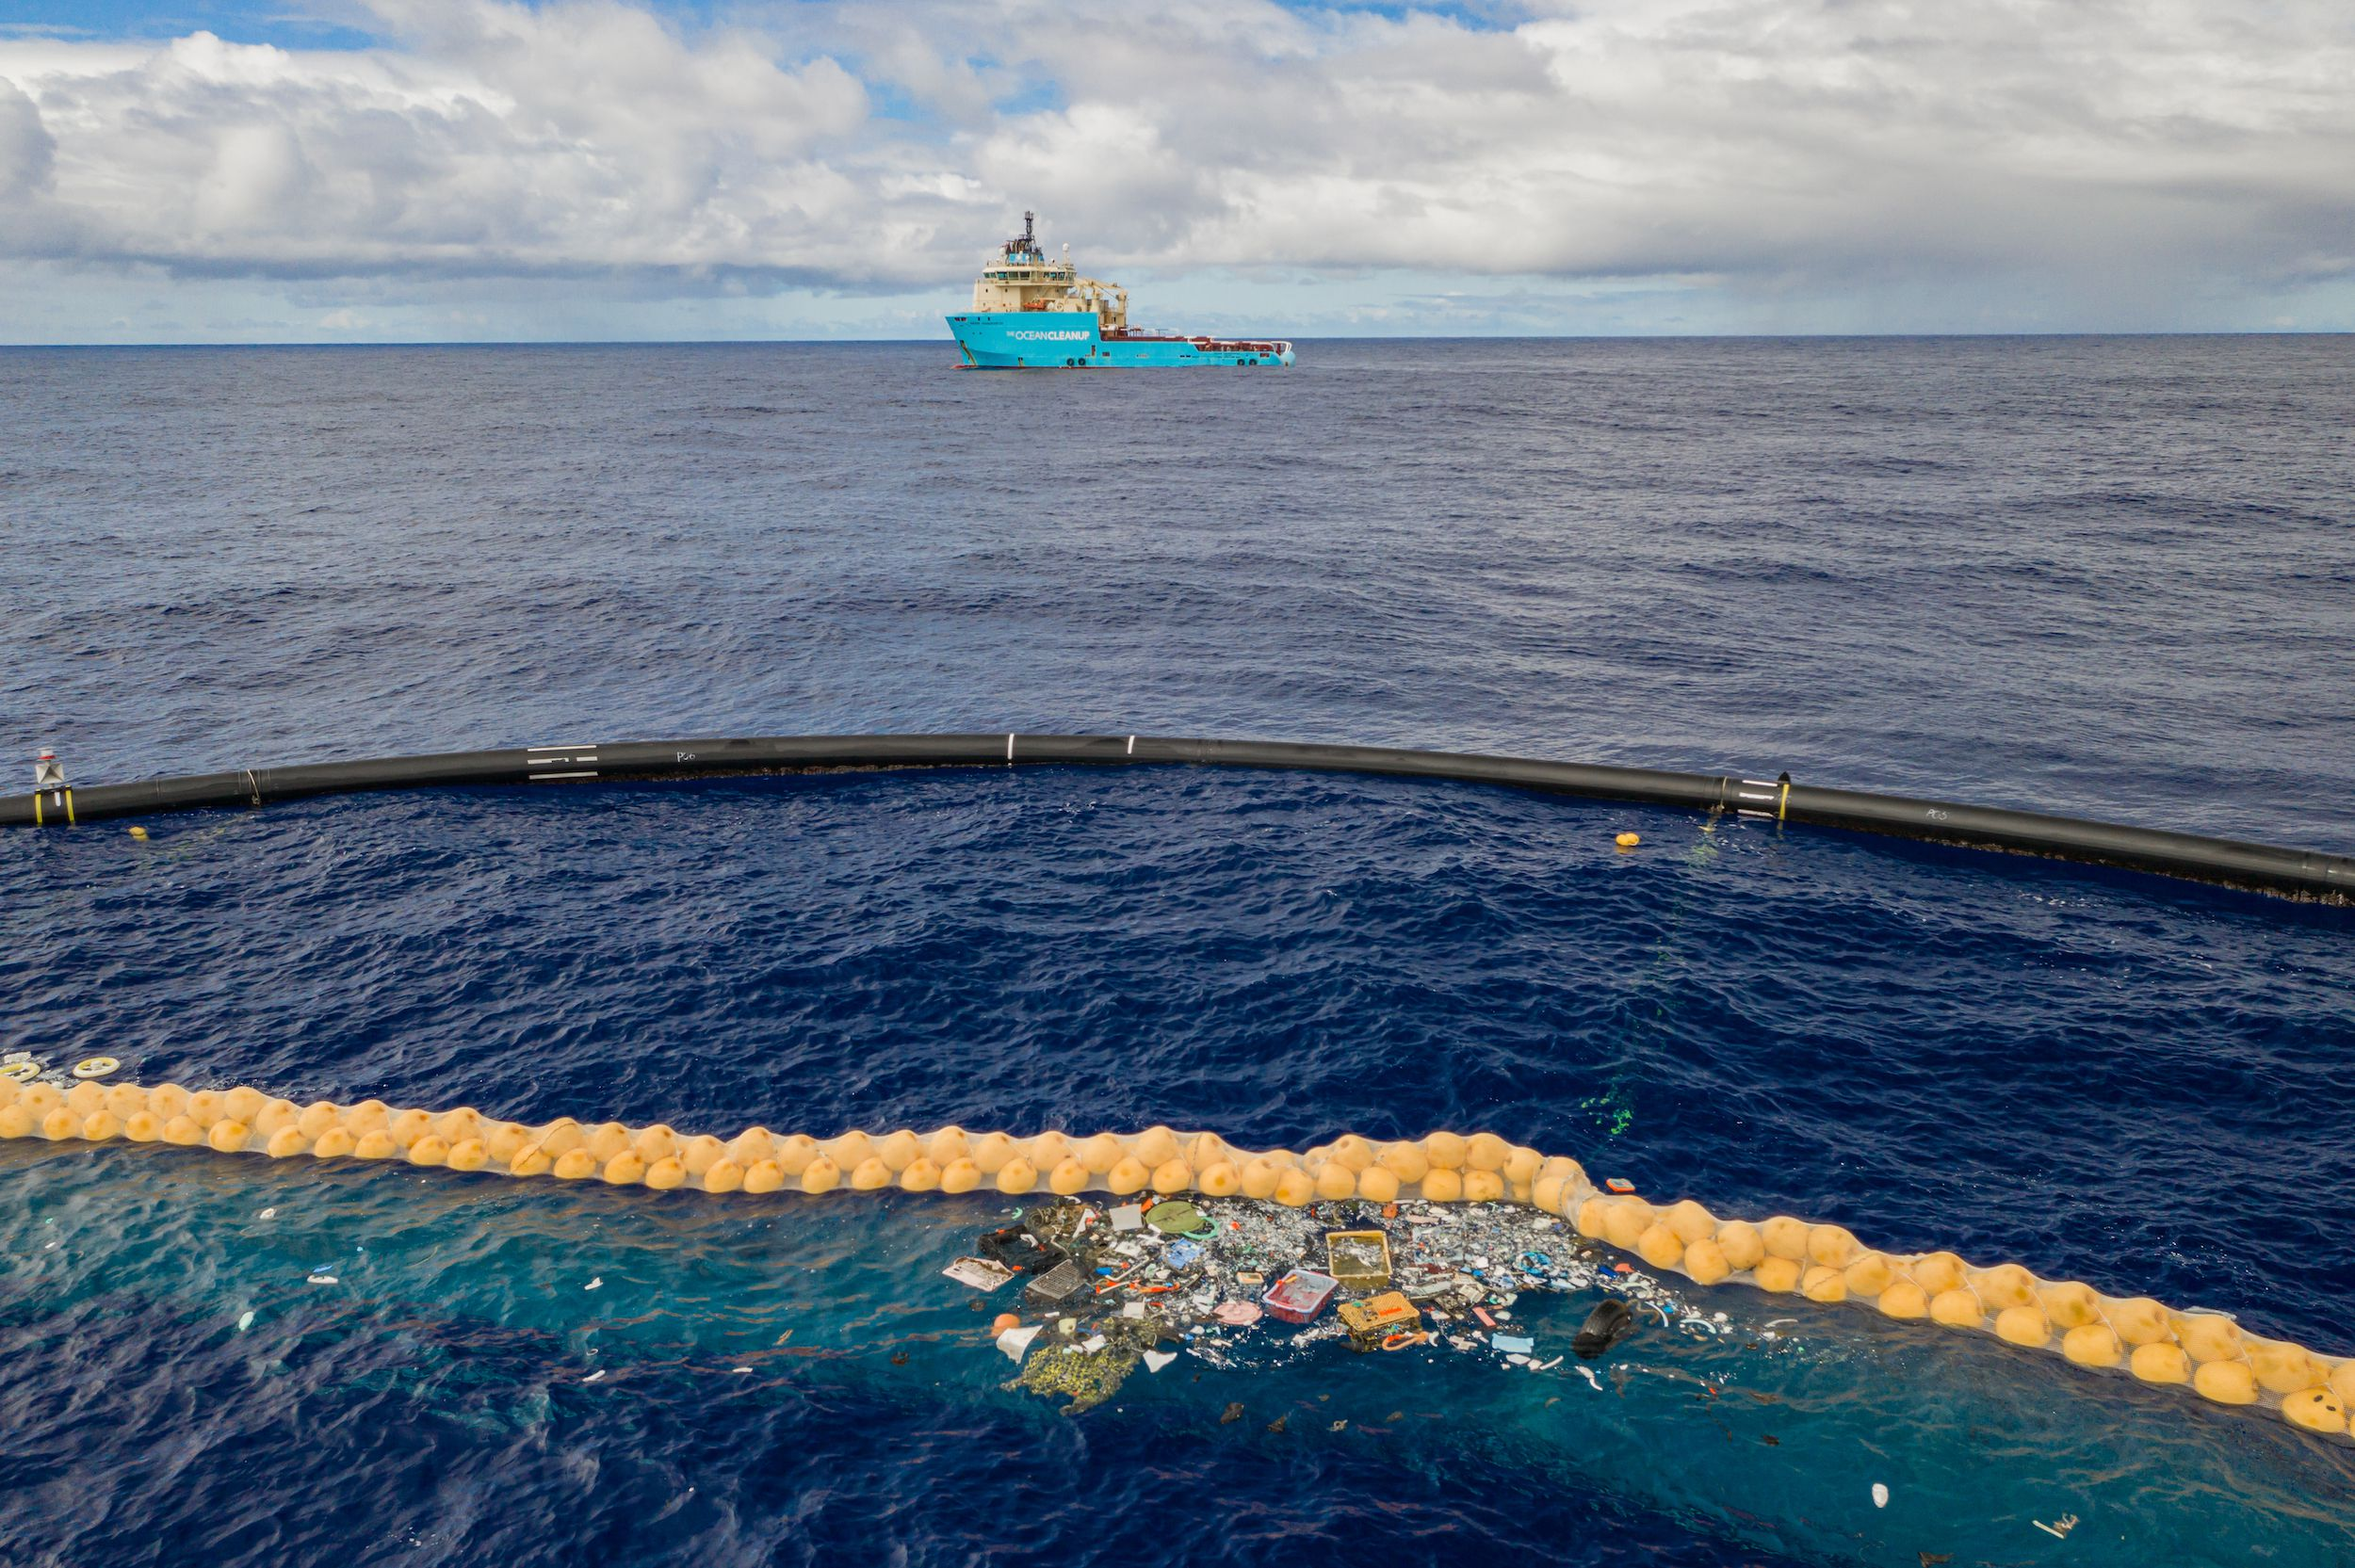 Dispositif mis en place par The Ocean Cleanup